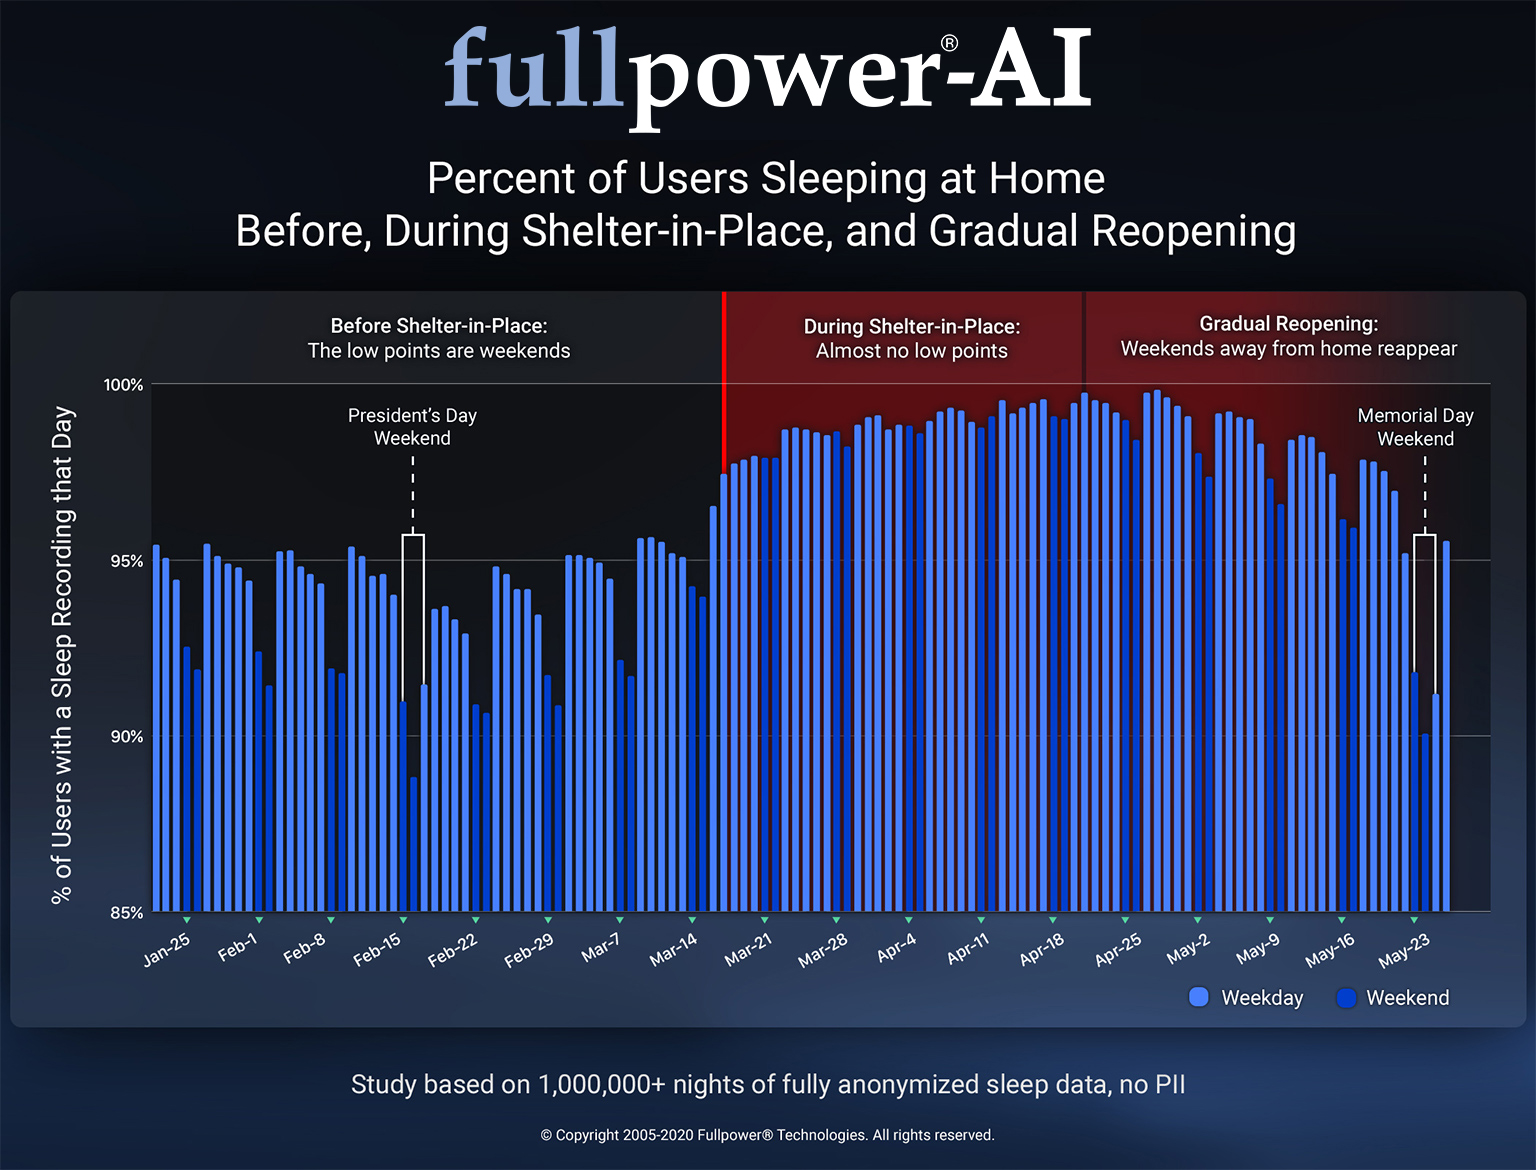 Percent of Users Sleeping at Home Before, During Shelter-in-Place, and Gradual Reopening